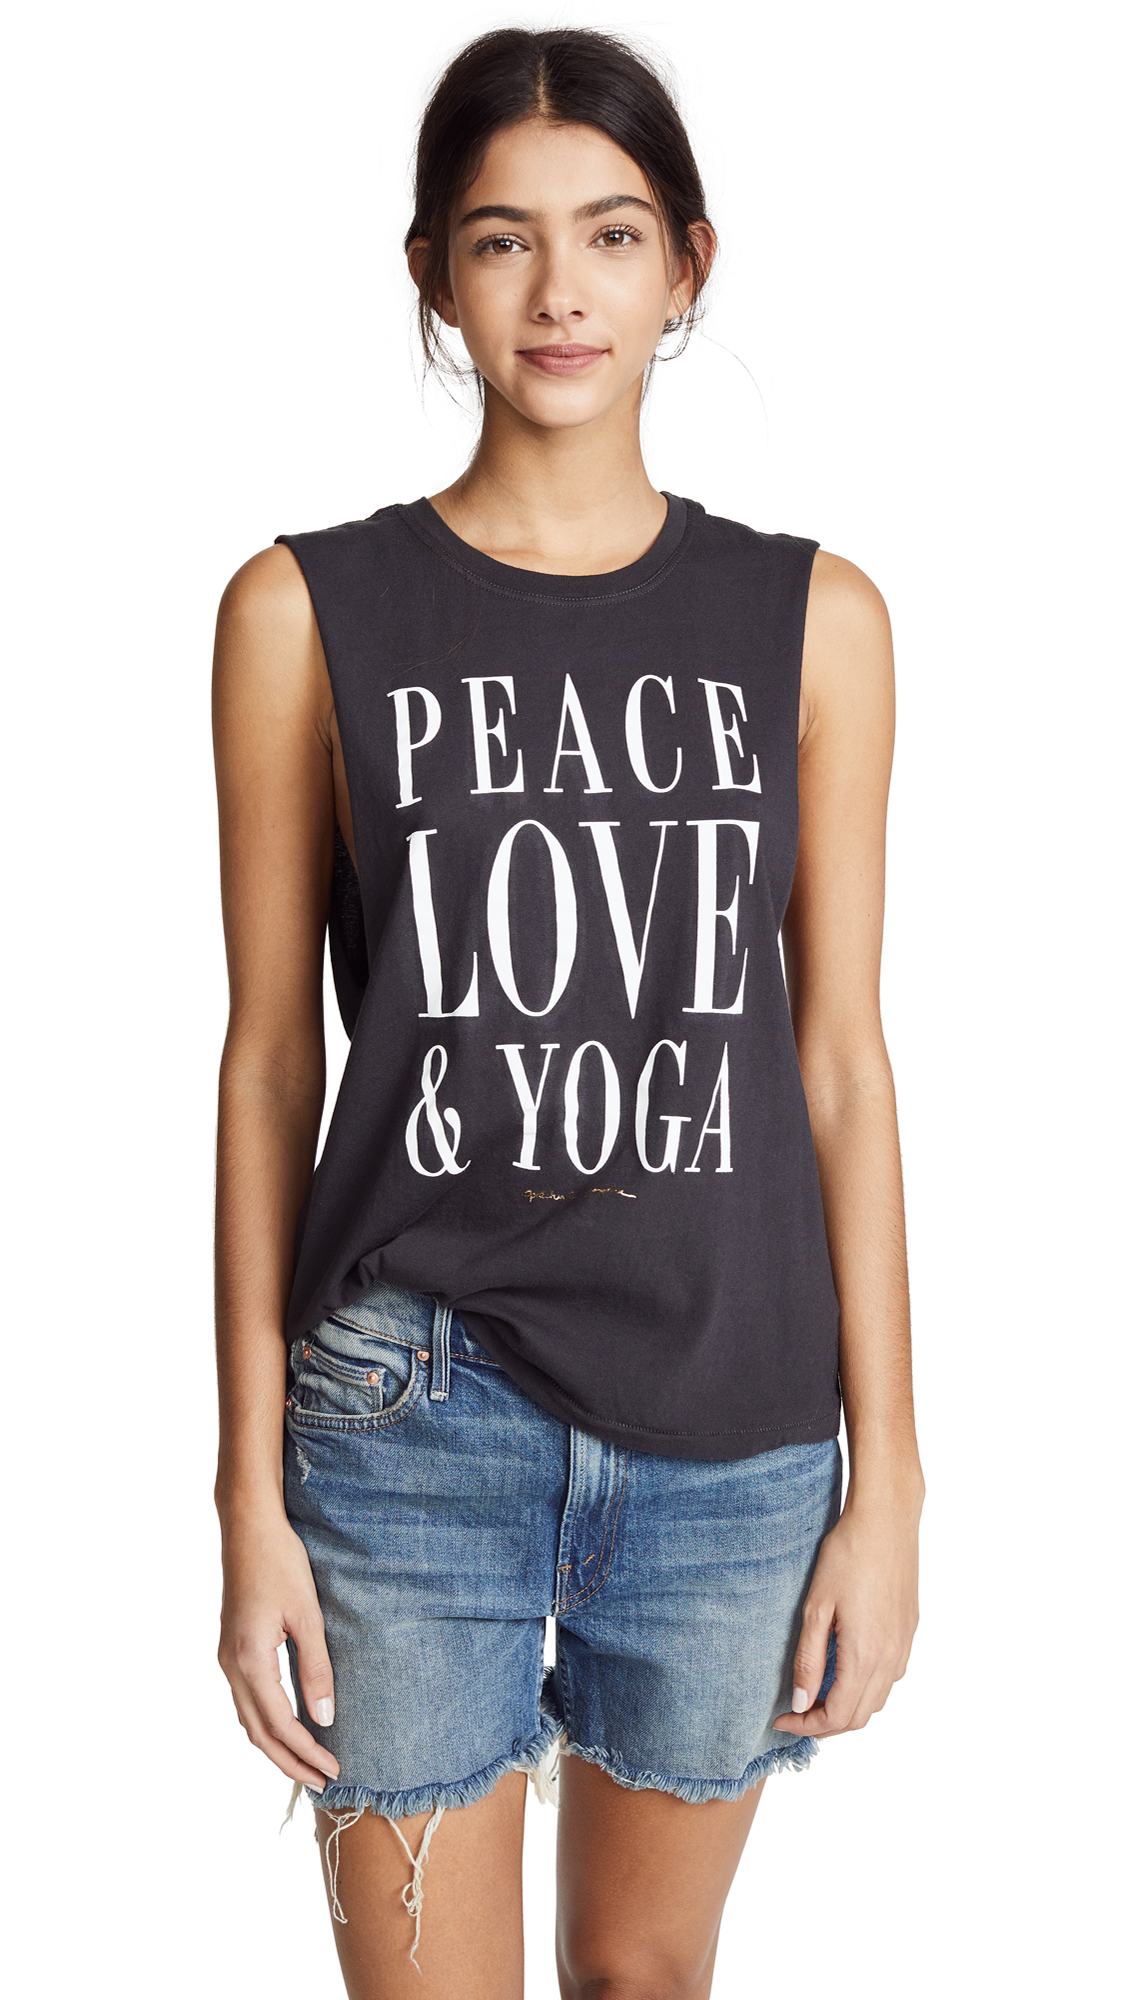 PEACE LOVE YOGA TANK